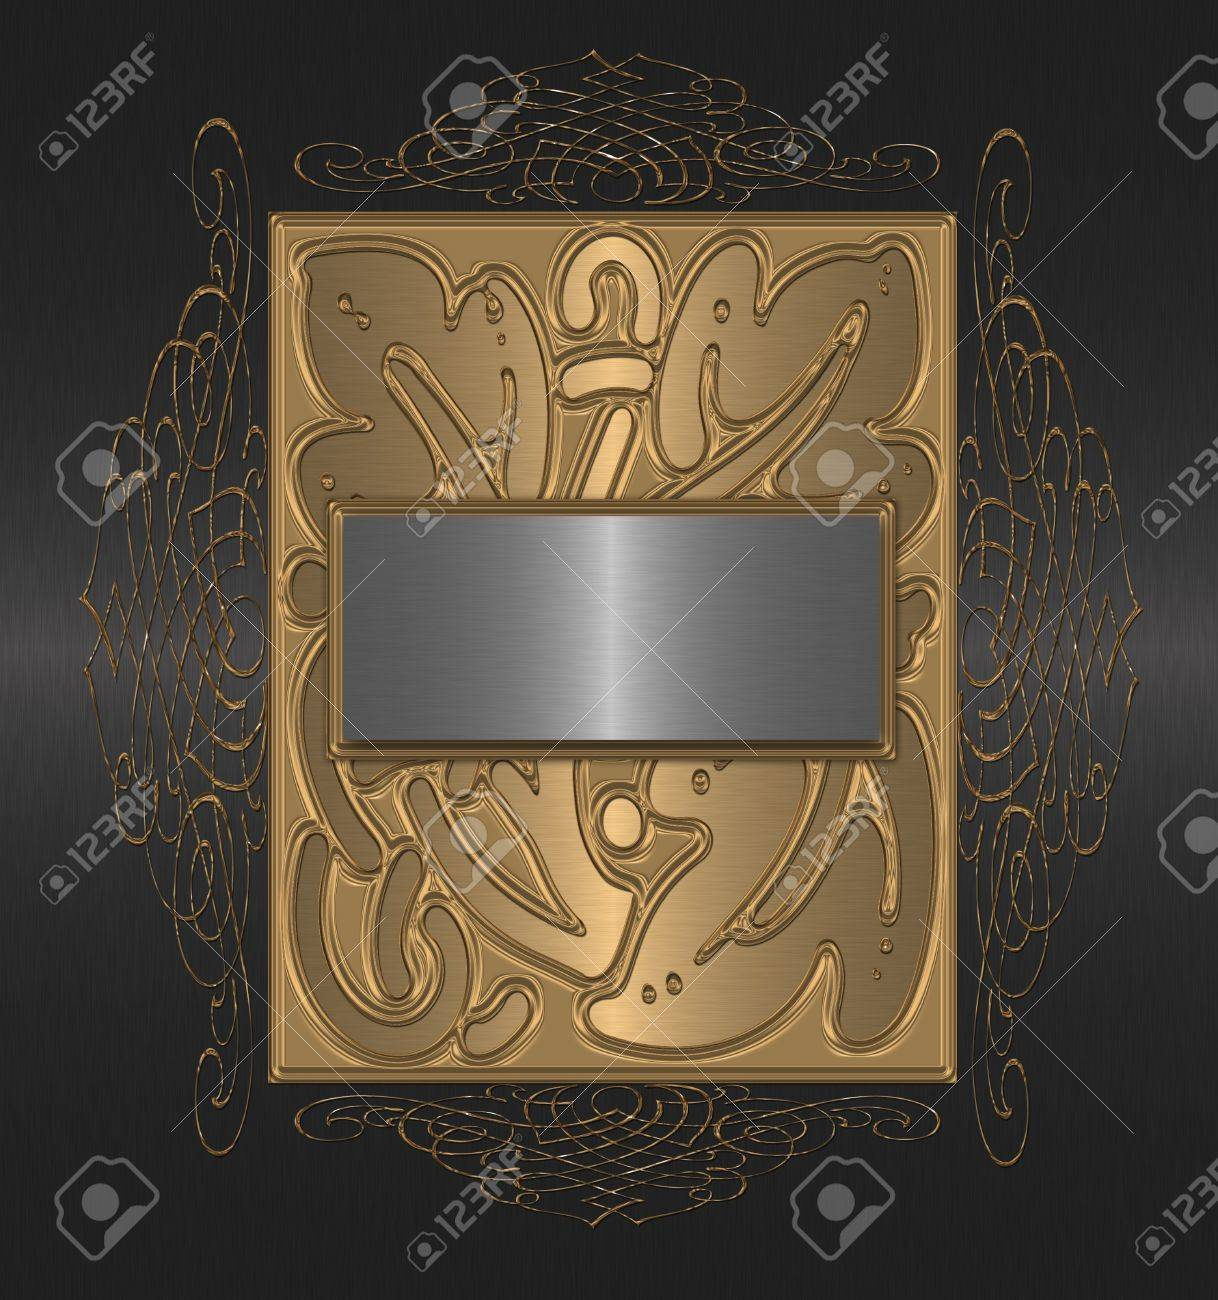 gold silver and black vintage background Stock Photo - 9870548